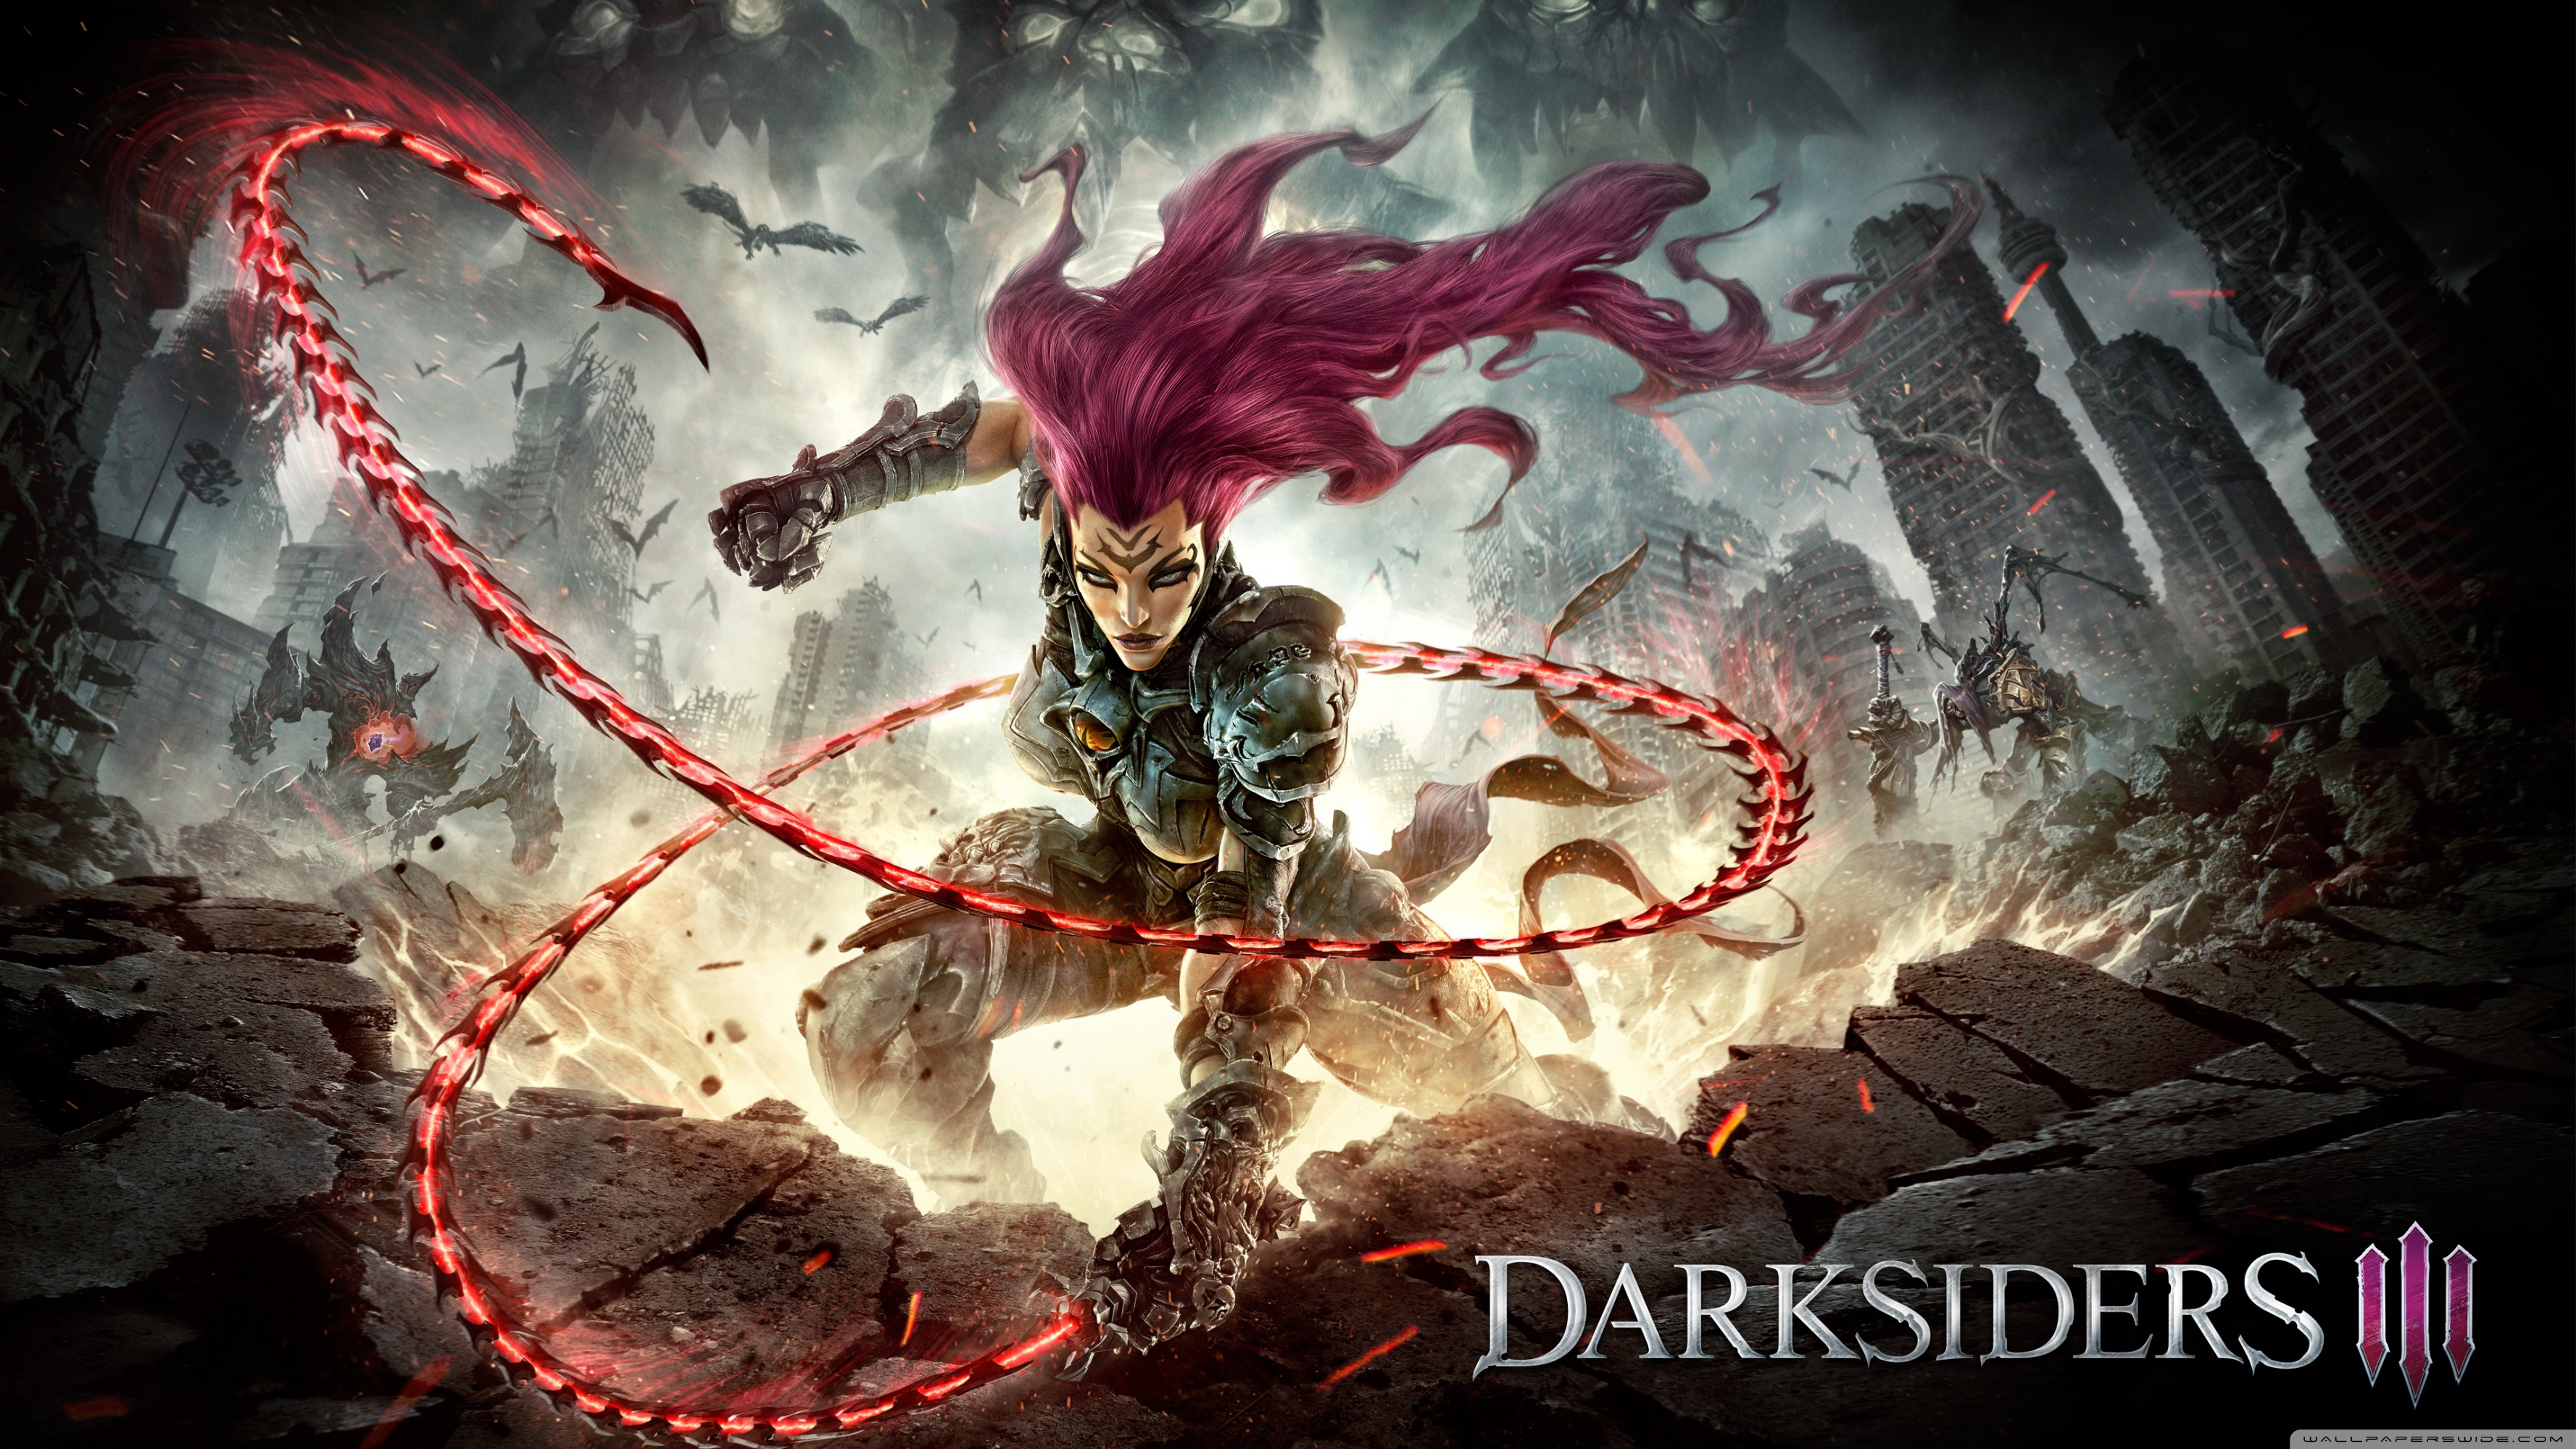 Fury DarkSiders III 4K HD Desktop Wallpaper for 4K Ultra HD TV 3554x1999